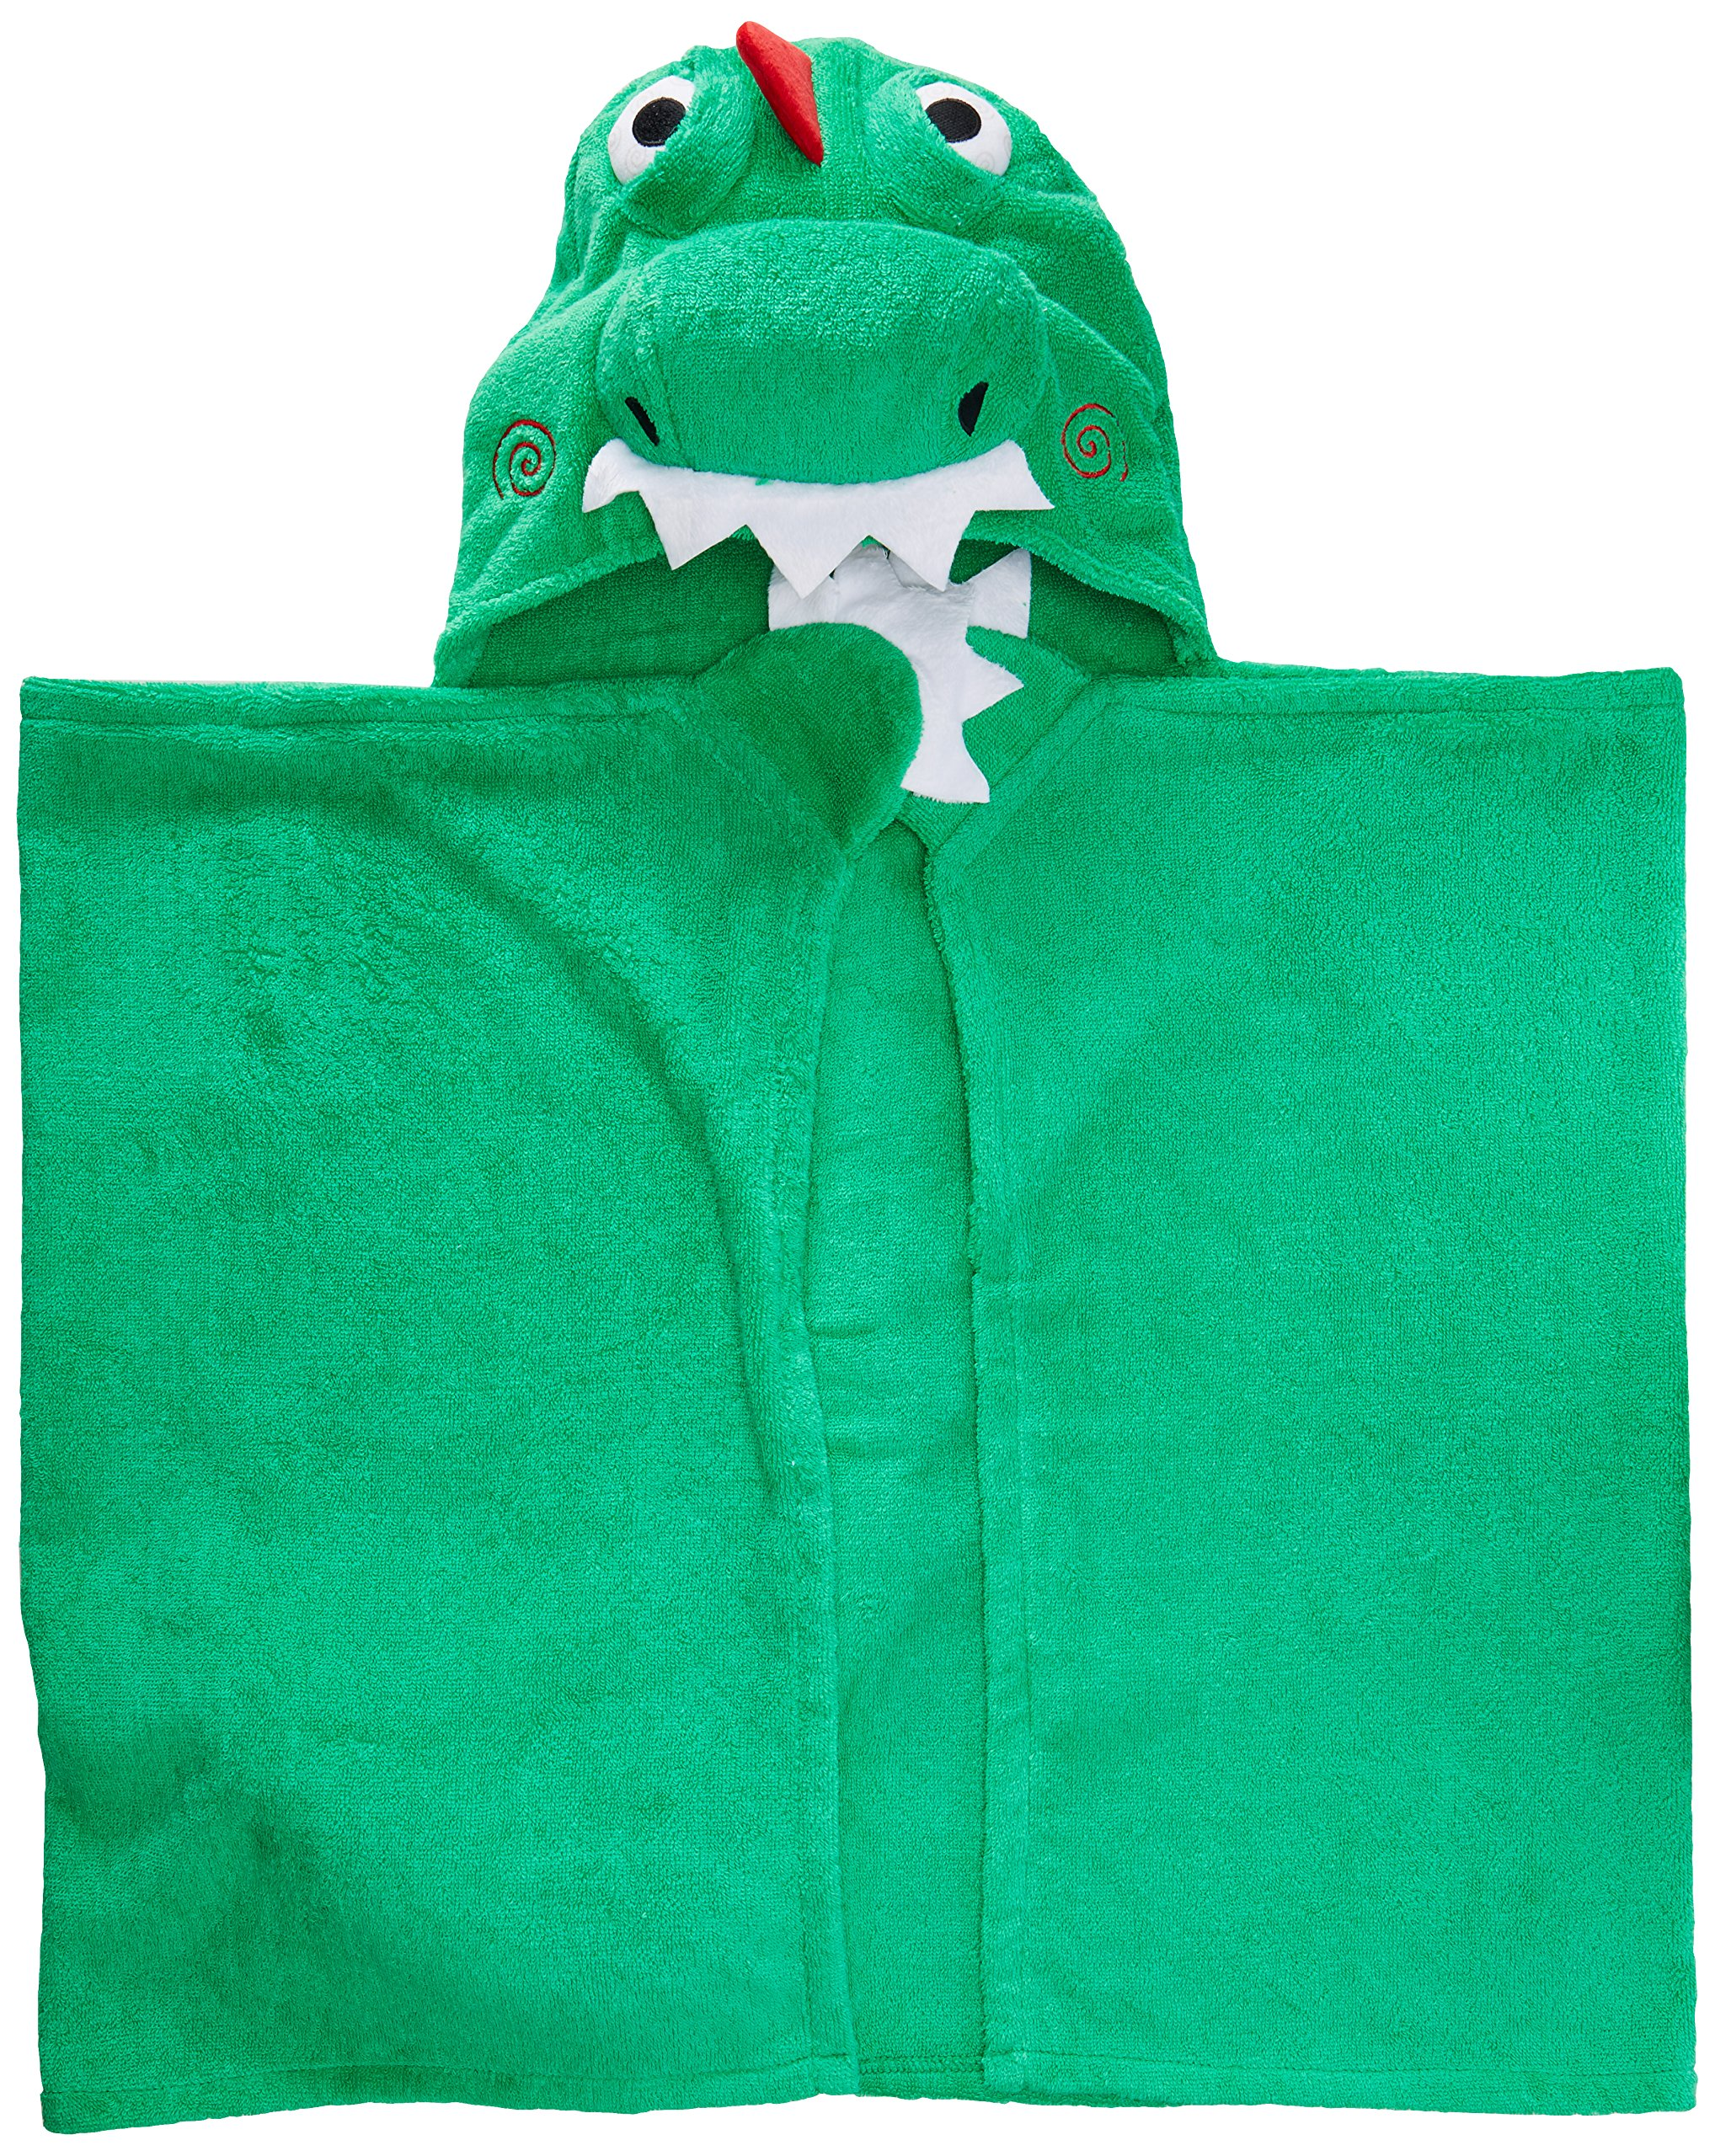 ZOOCCHINI Hooded Towel, 50 inches x 22 inches, 100% Cotton Plush Terry, Toddlers and Kids, Great for Bath, Pool, and Beach! (Dinosaur Green) by ZOOCCHINI